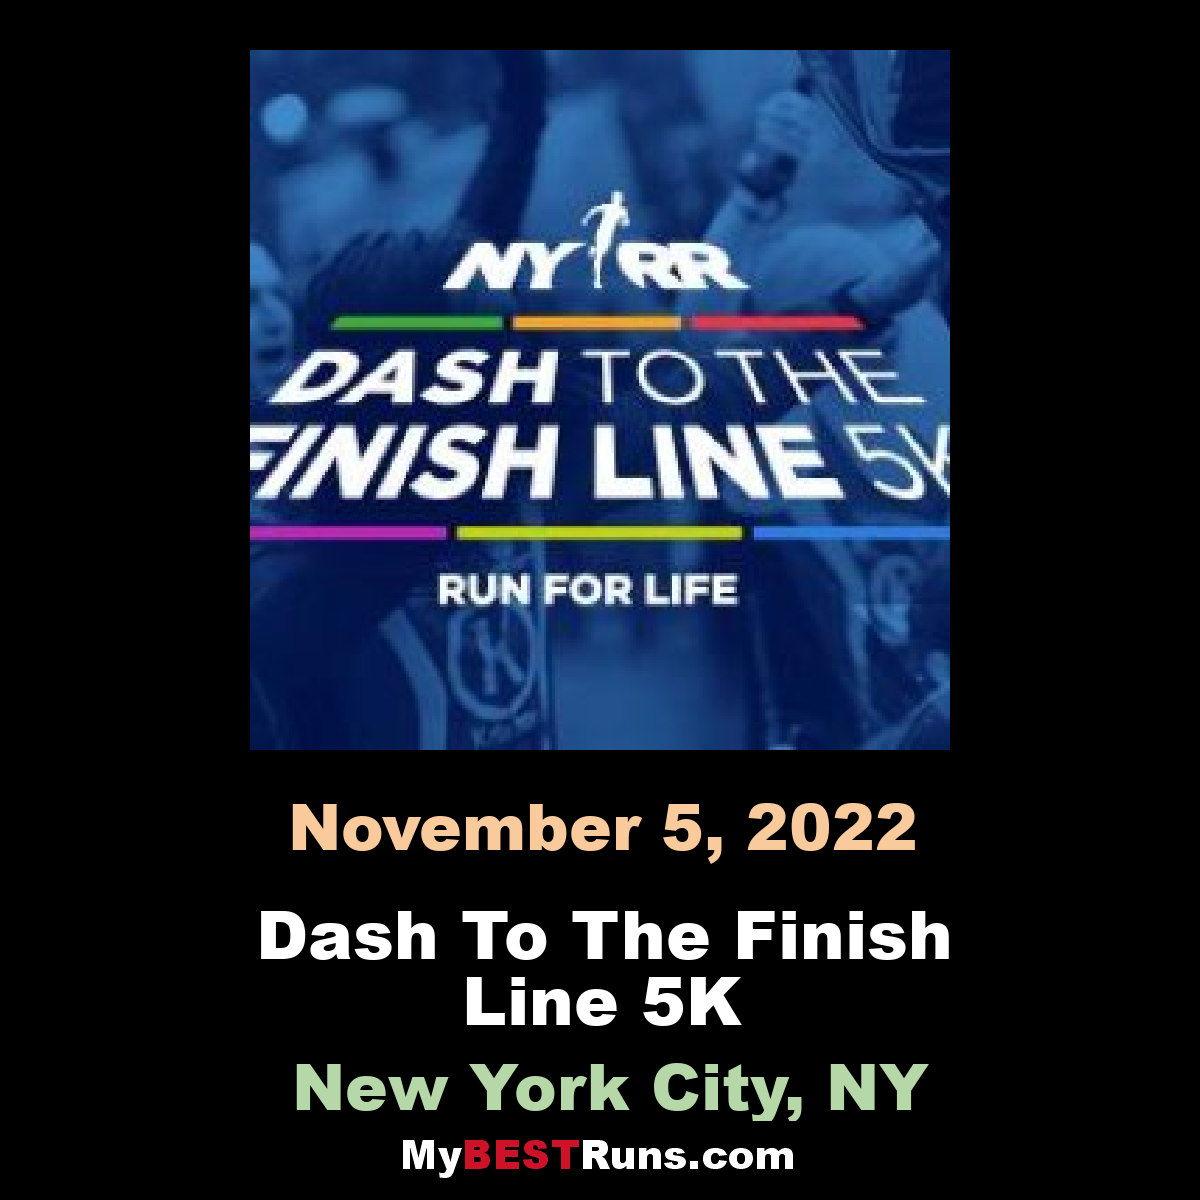 Dash to the Finish Line